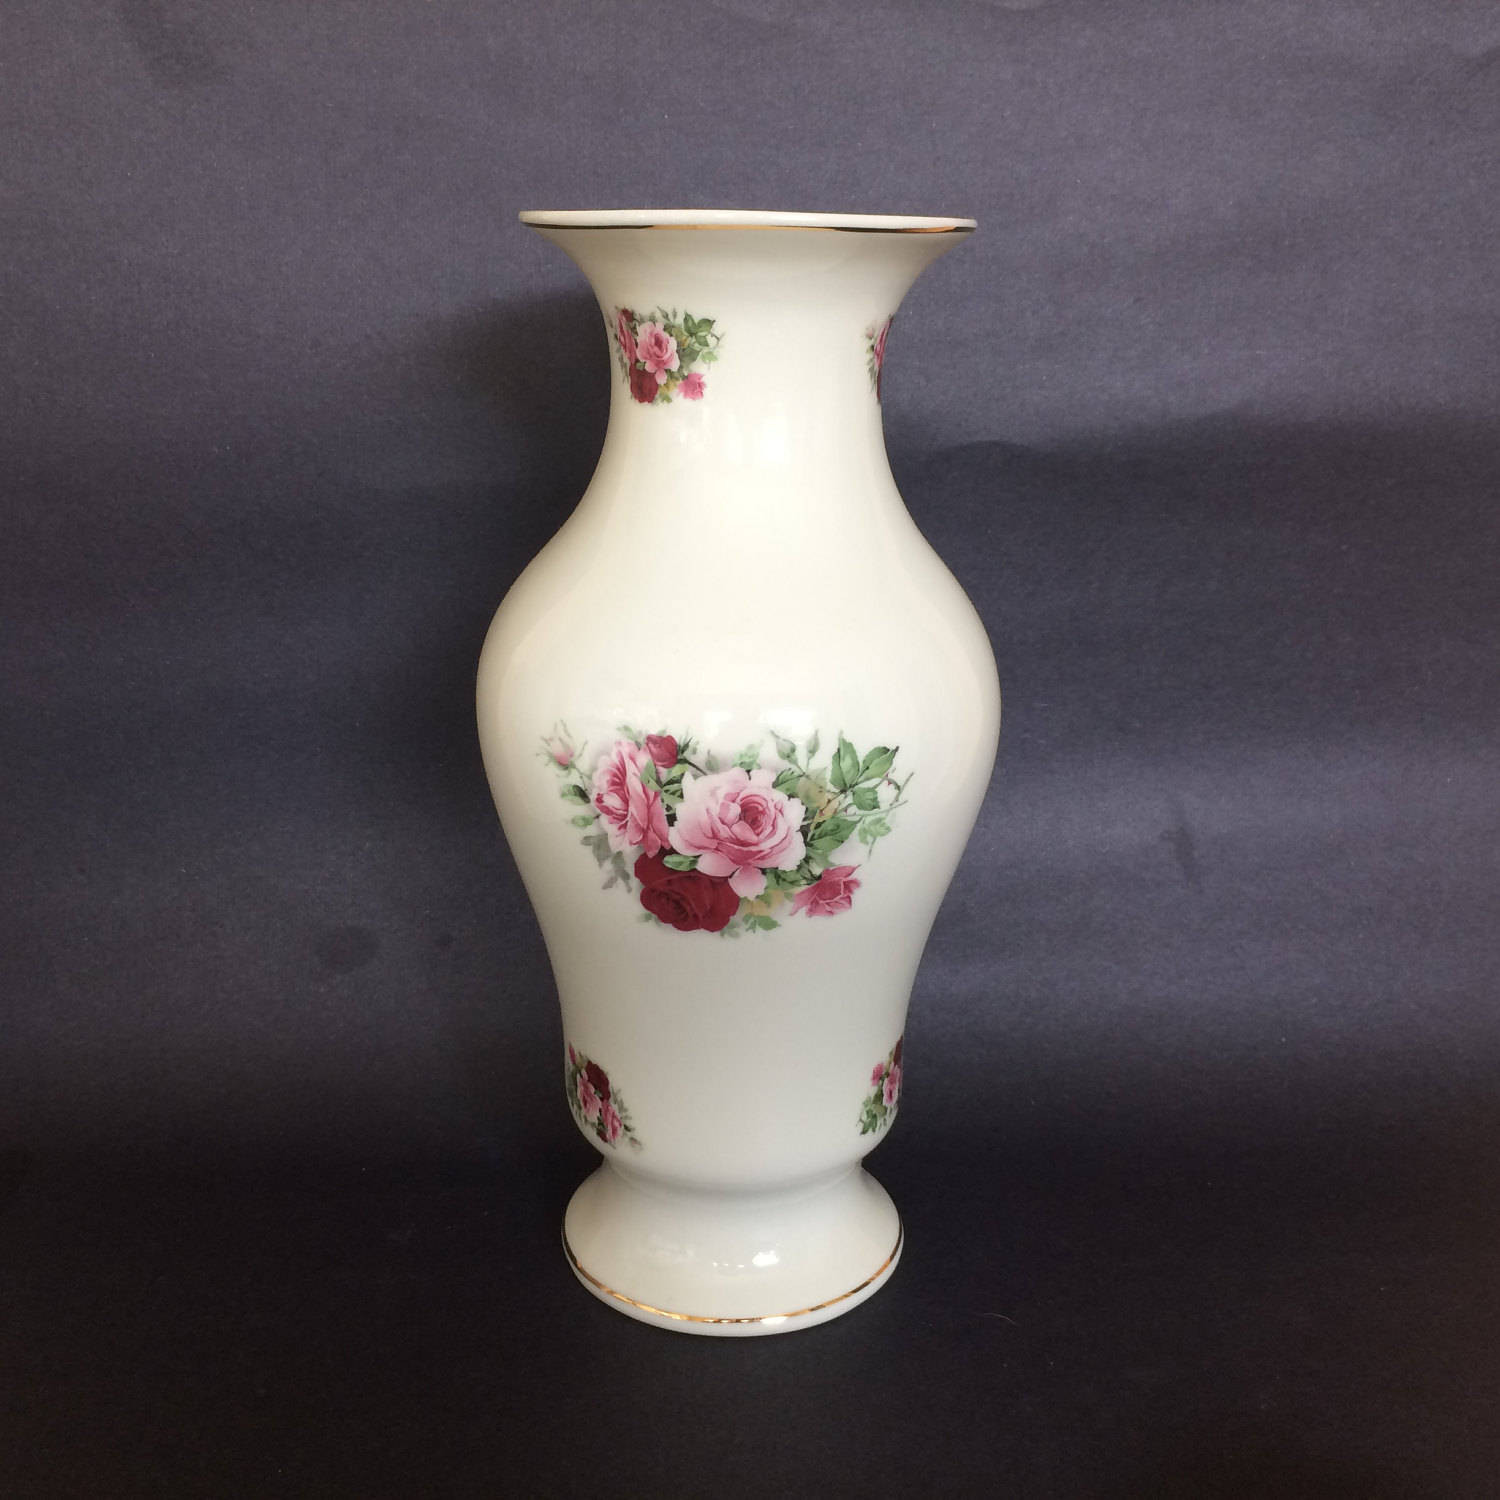 formalities by baum bros rose vase of tall china vaserose china urn shape vase formalities vase baum intended for tall china vaserose china urn shape vase formalities vase baum brothers china sweetheart rose pattern old country rose pink red roses